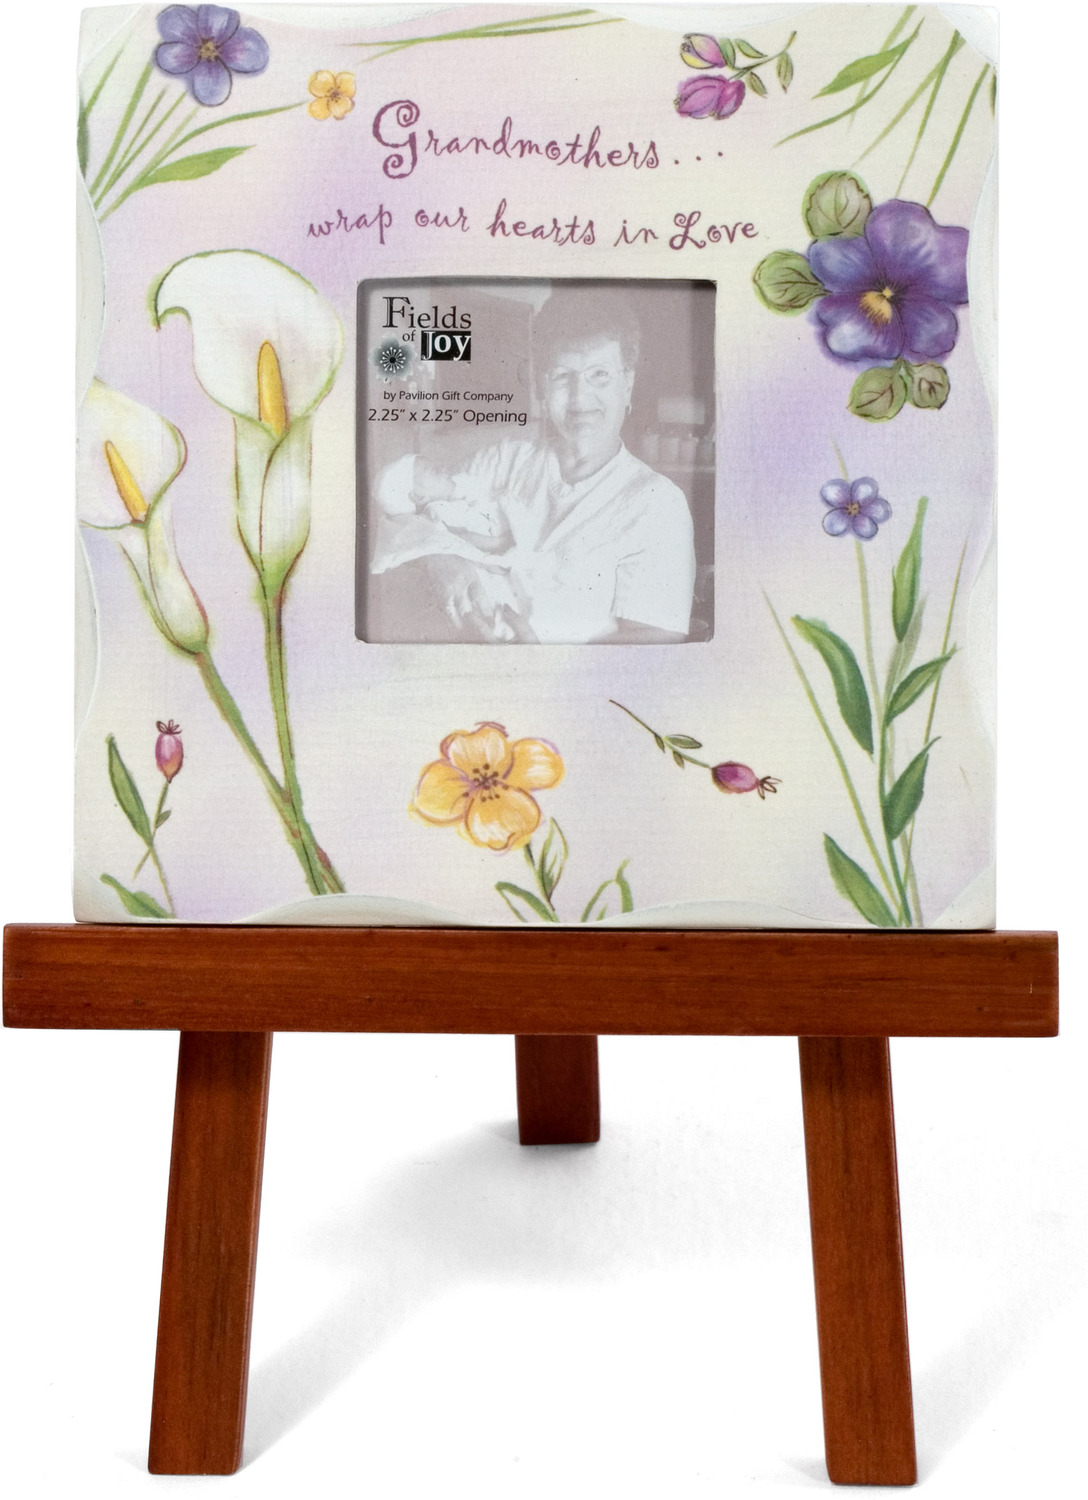 "Grandmother by Fields of Joy - Grandmother - 5.5""x5.5"" Mini Frame w/E"